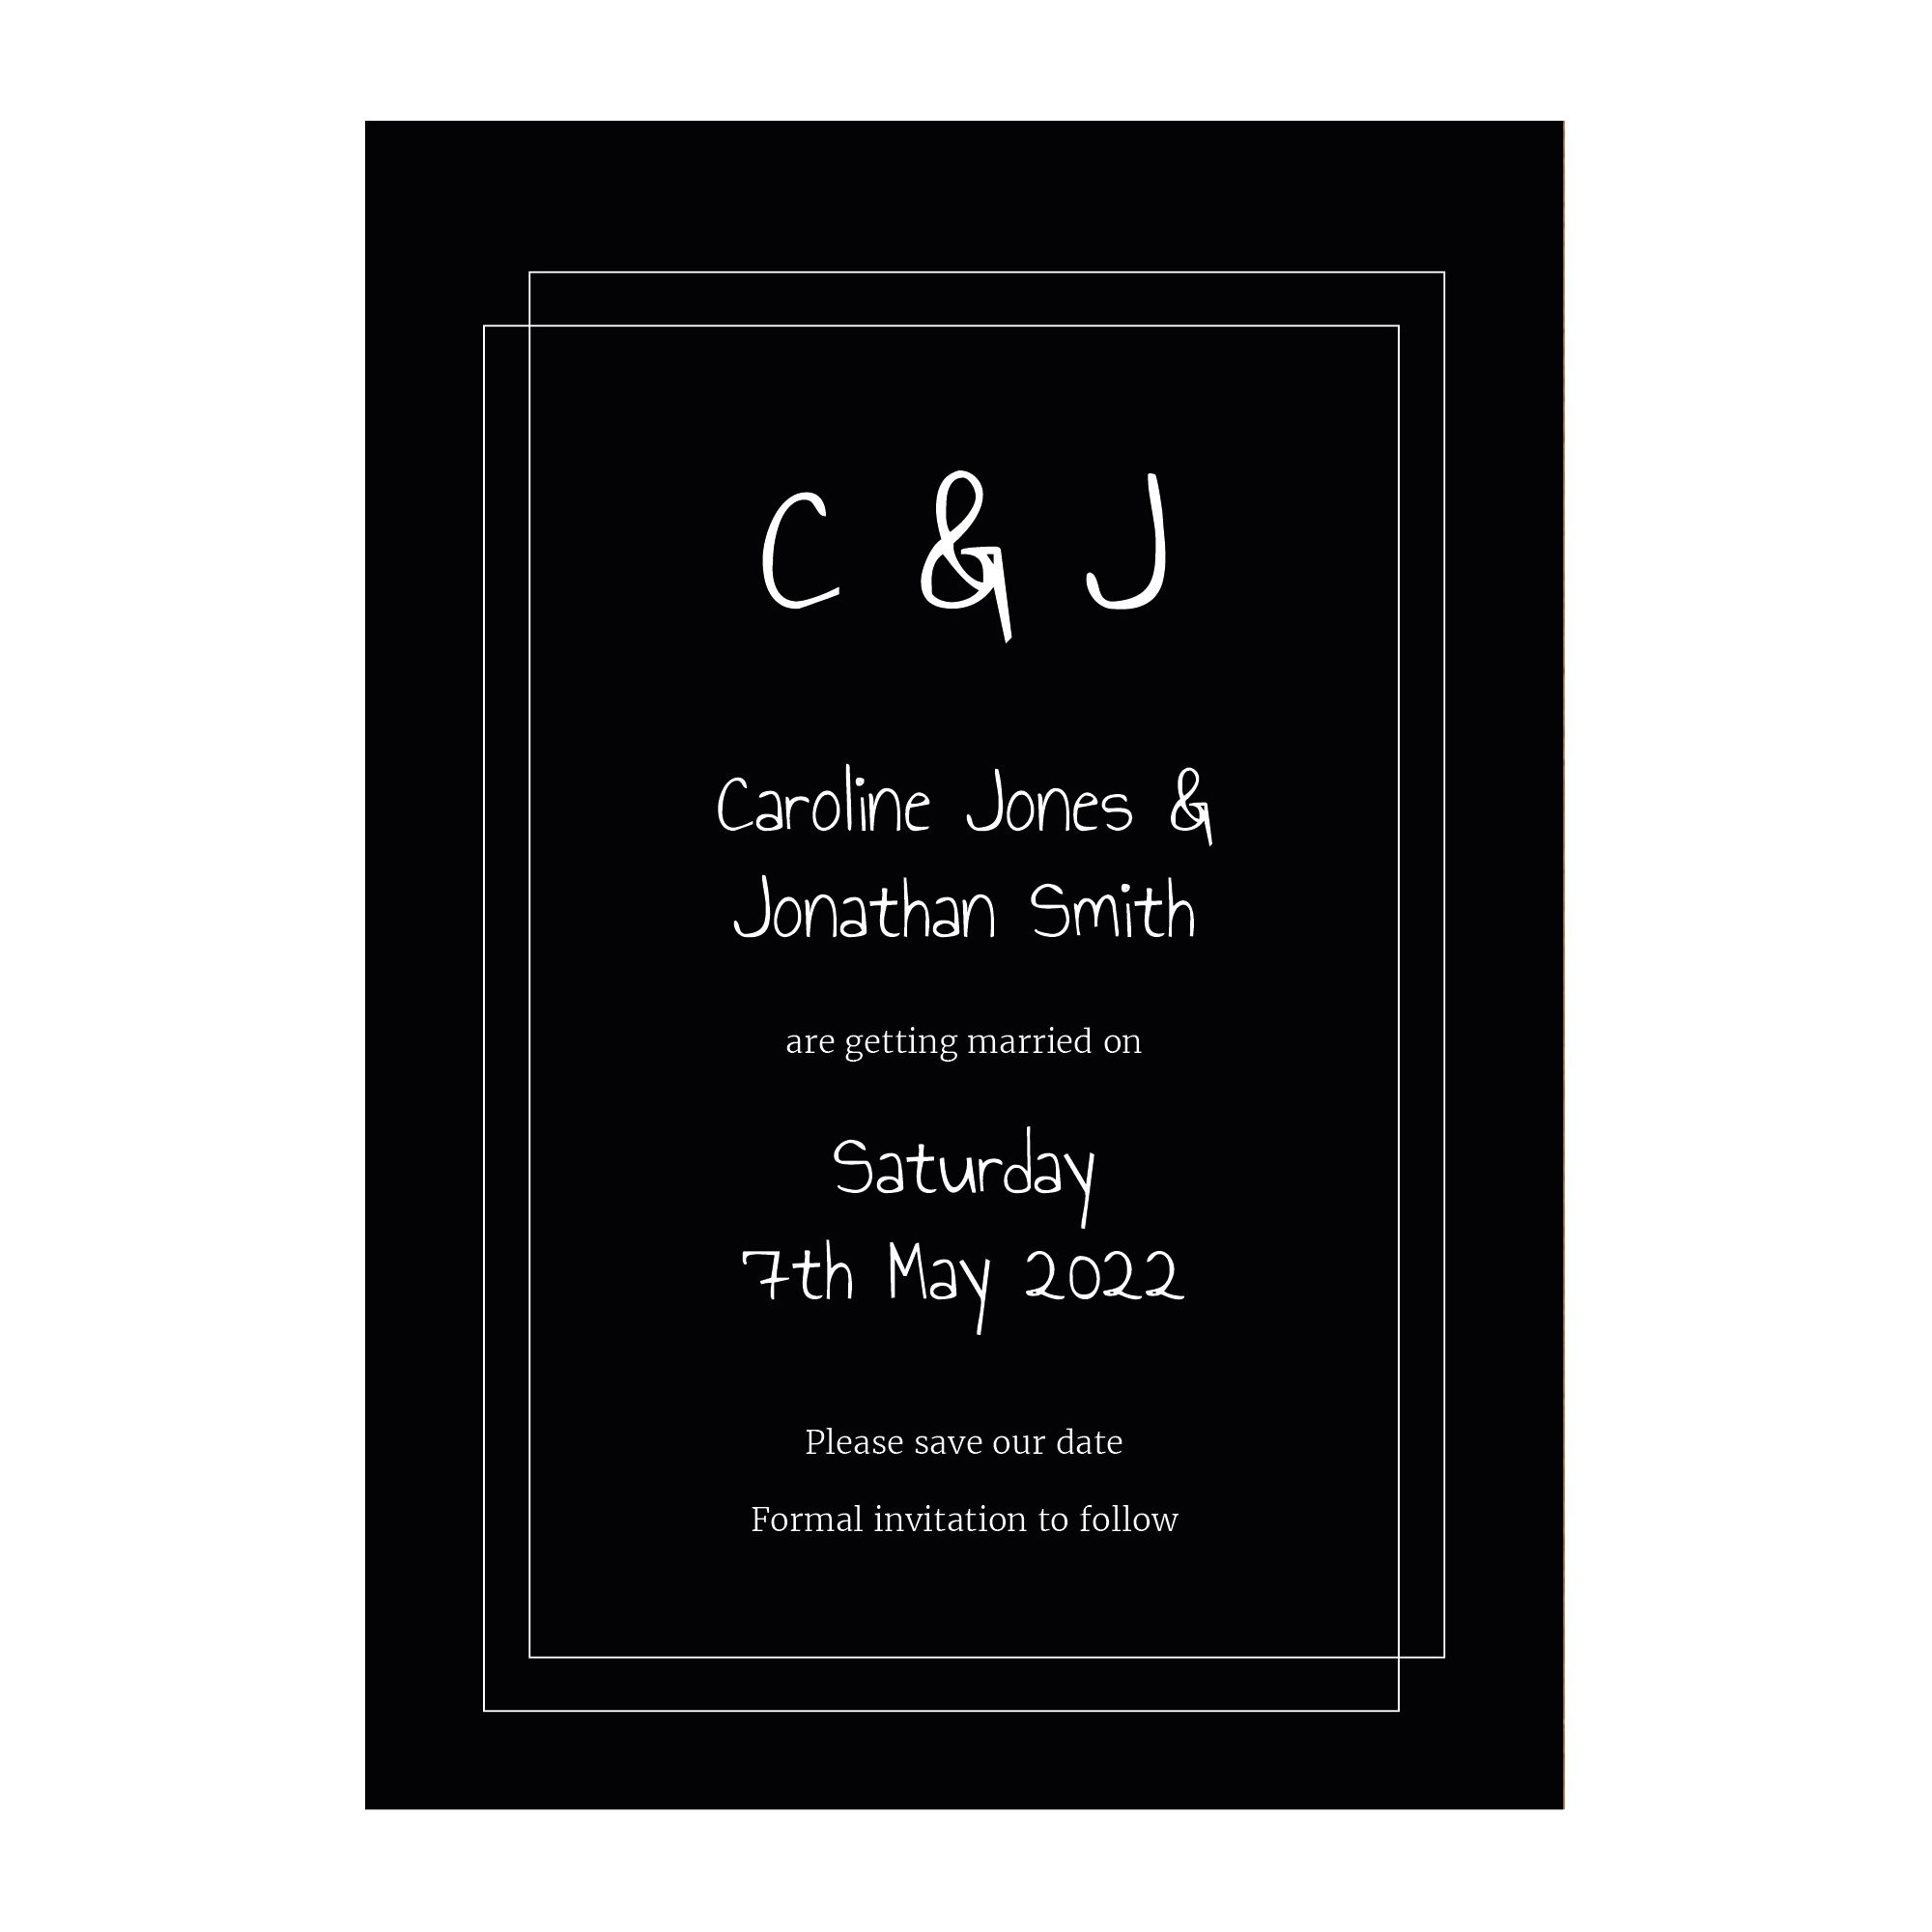 Black with White Ink Classic Bordered Save the Date Cards